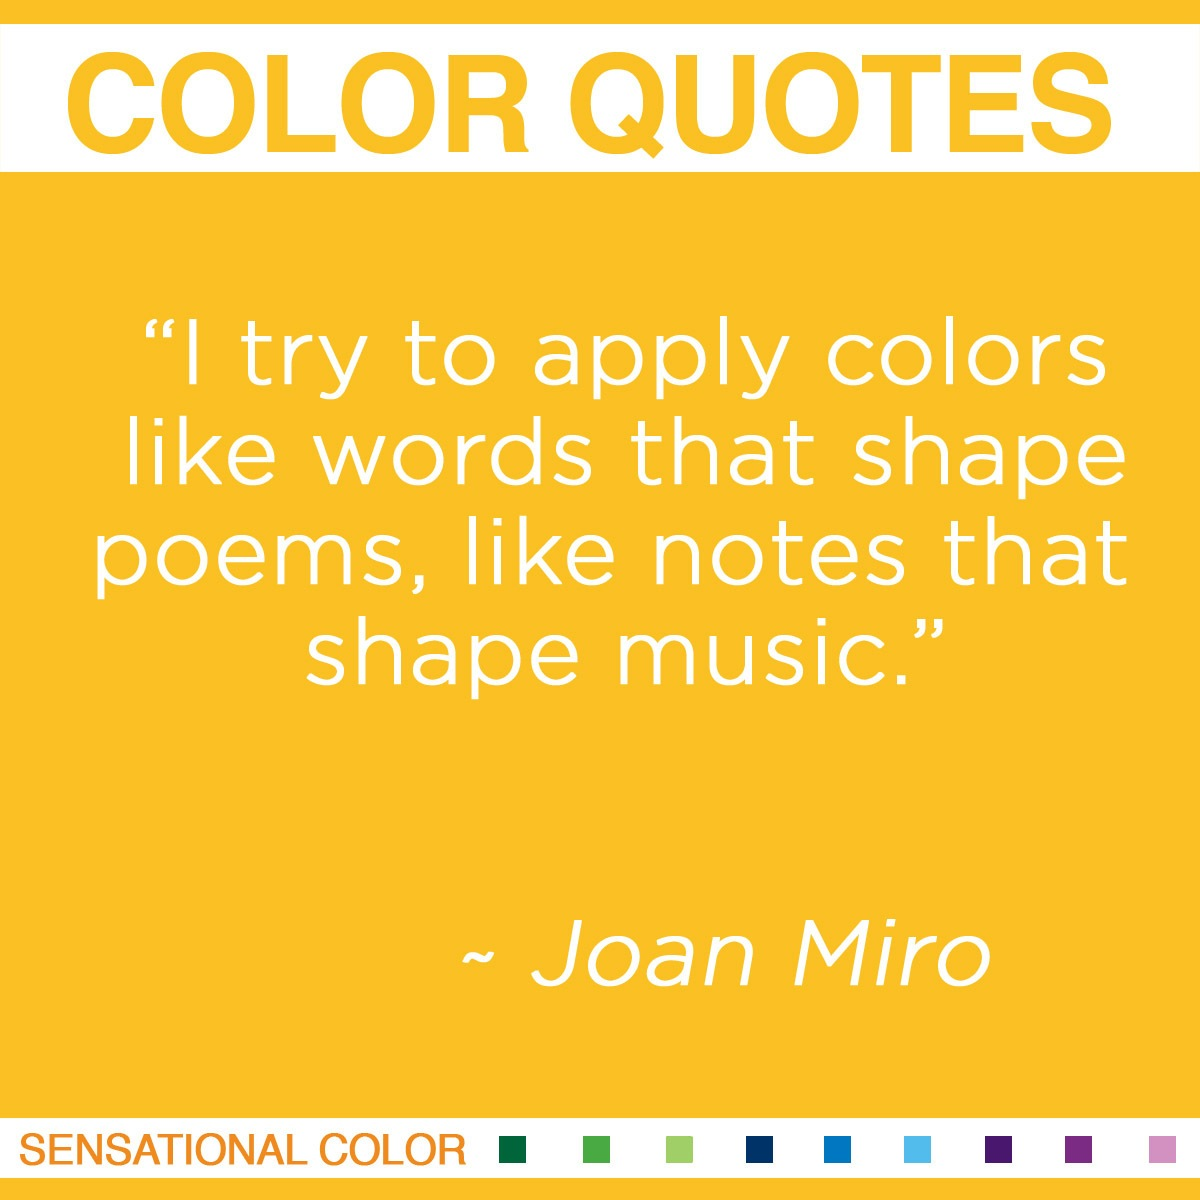 """I try to apply colors like words that shape poems, like notes that shape music."" - Joan Miro"